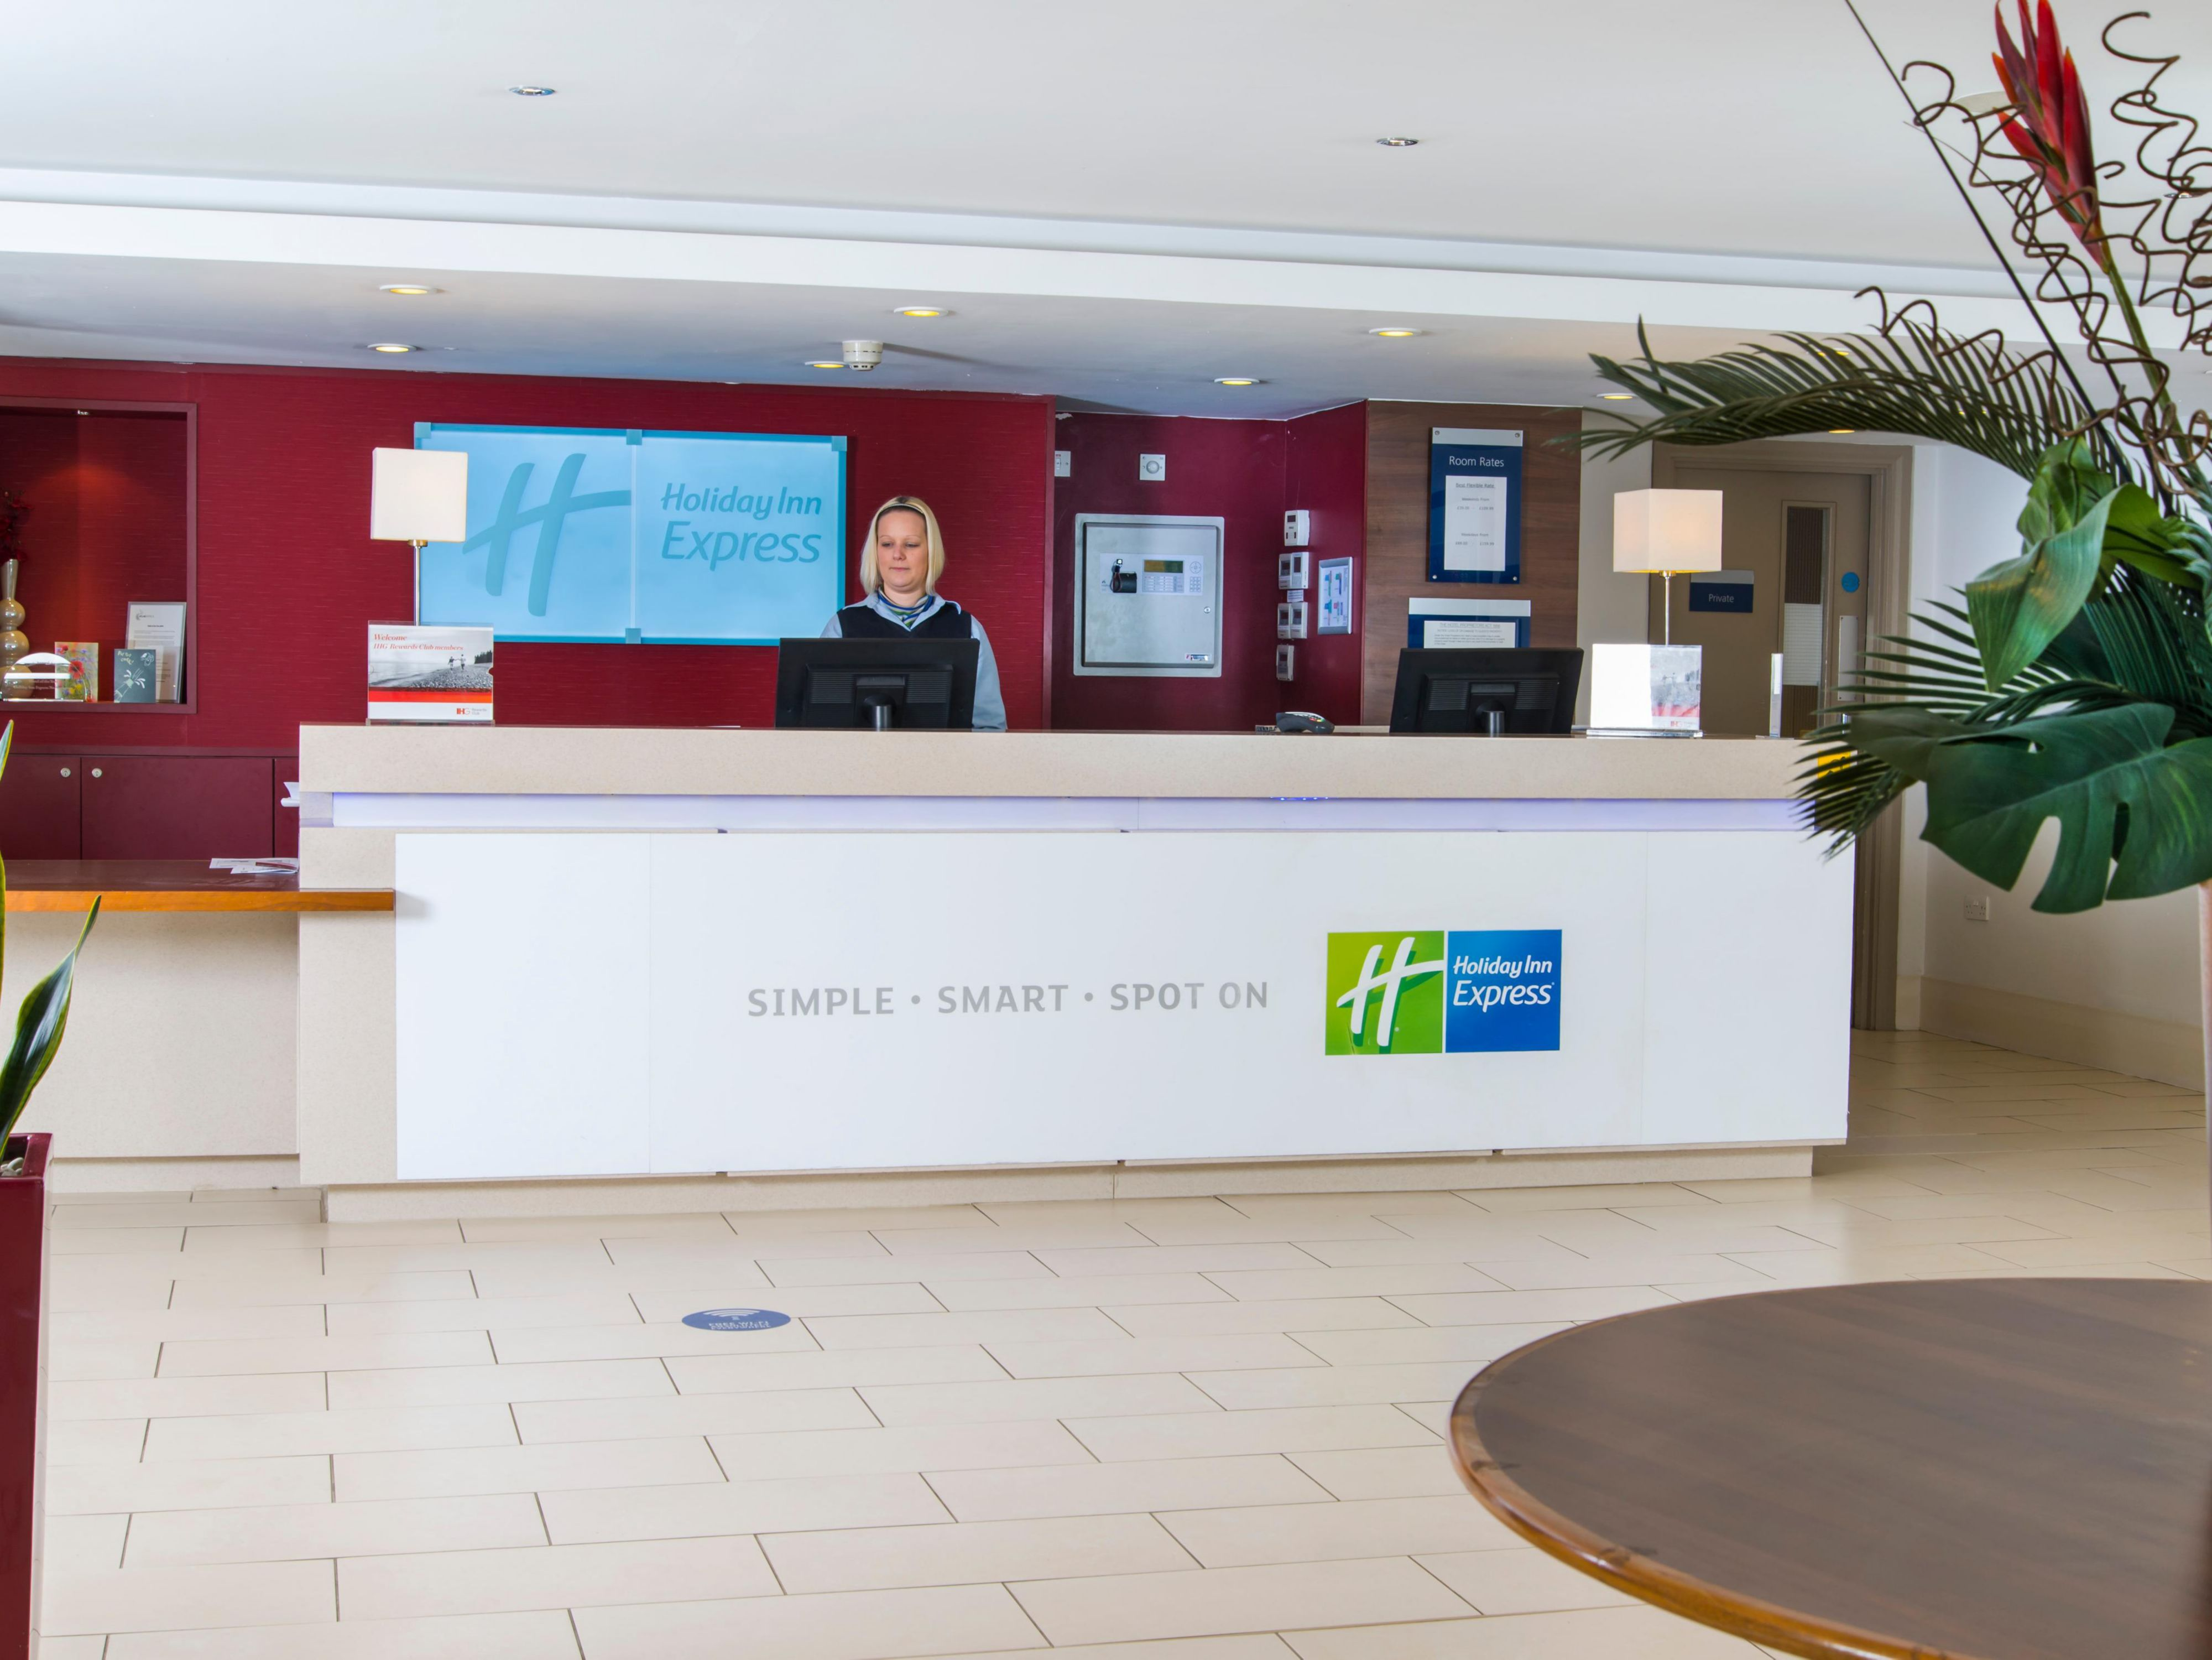 Welcome to Holiday Inn Express Northampton